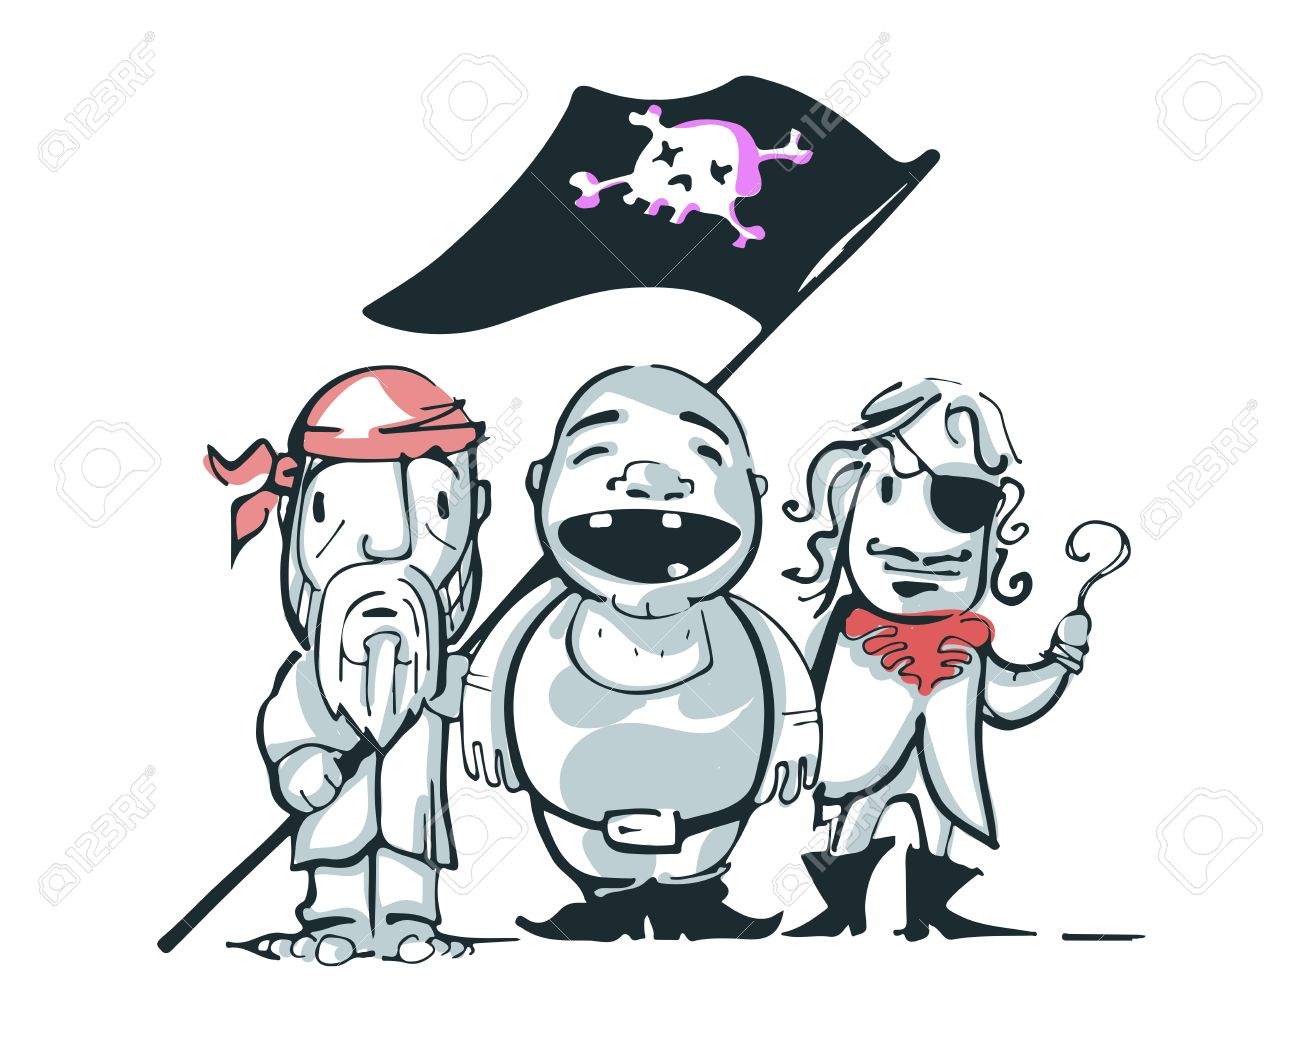 hand drawn vector illustration or drawing of some pirates